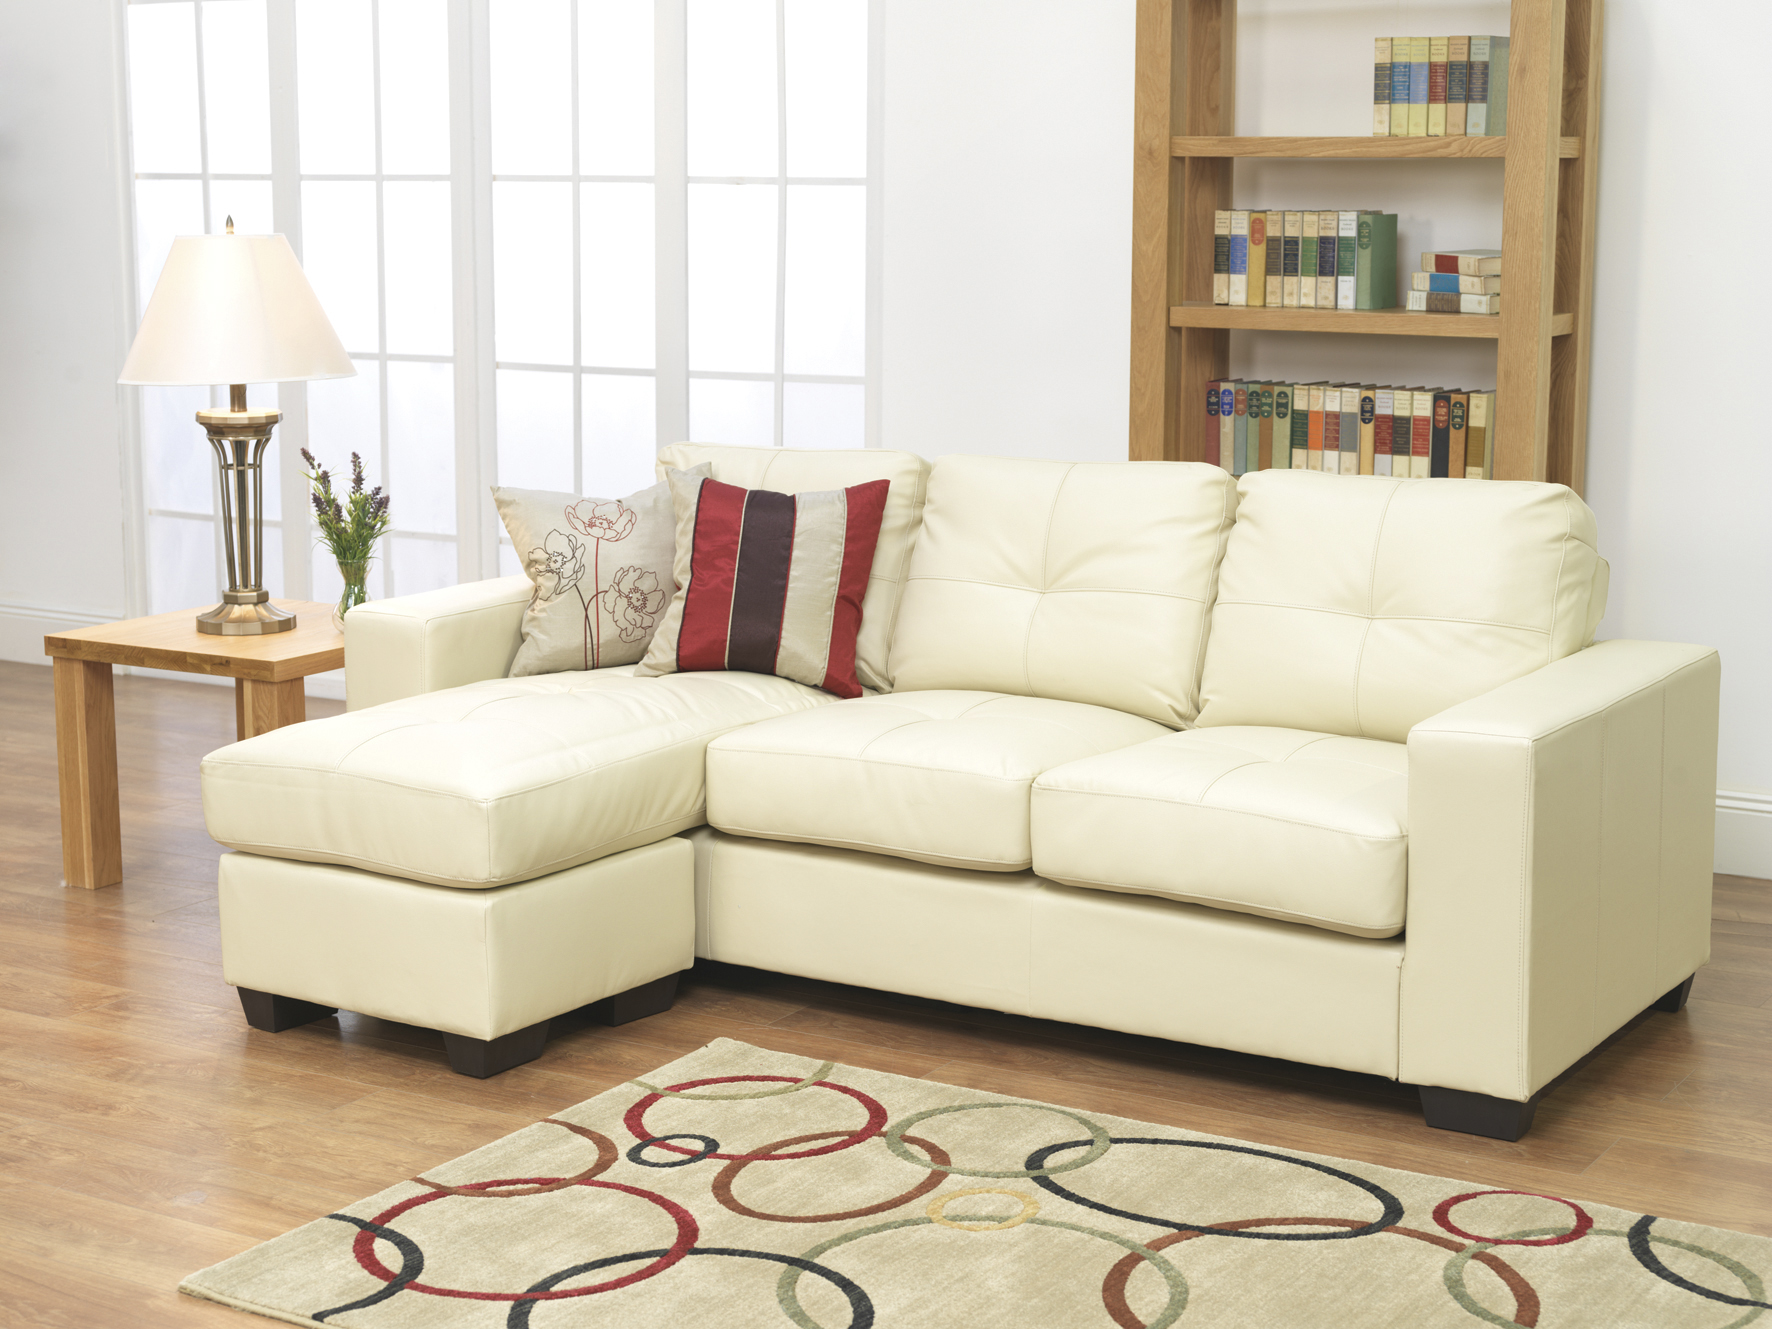 Dazzling l shaped couch for home decoration with l shaped couch covers